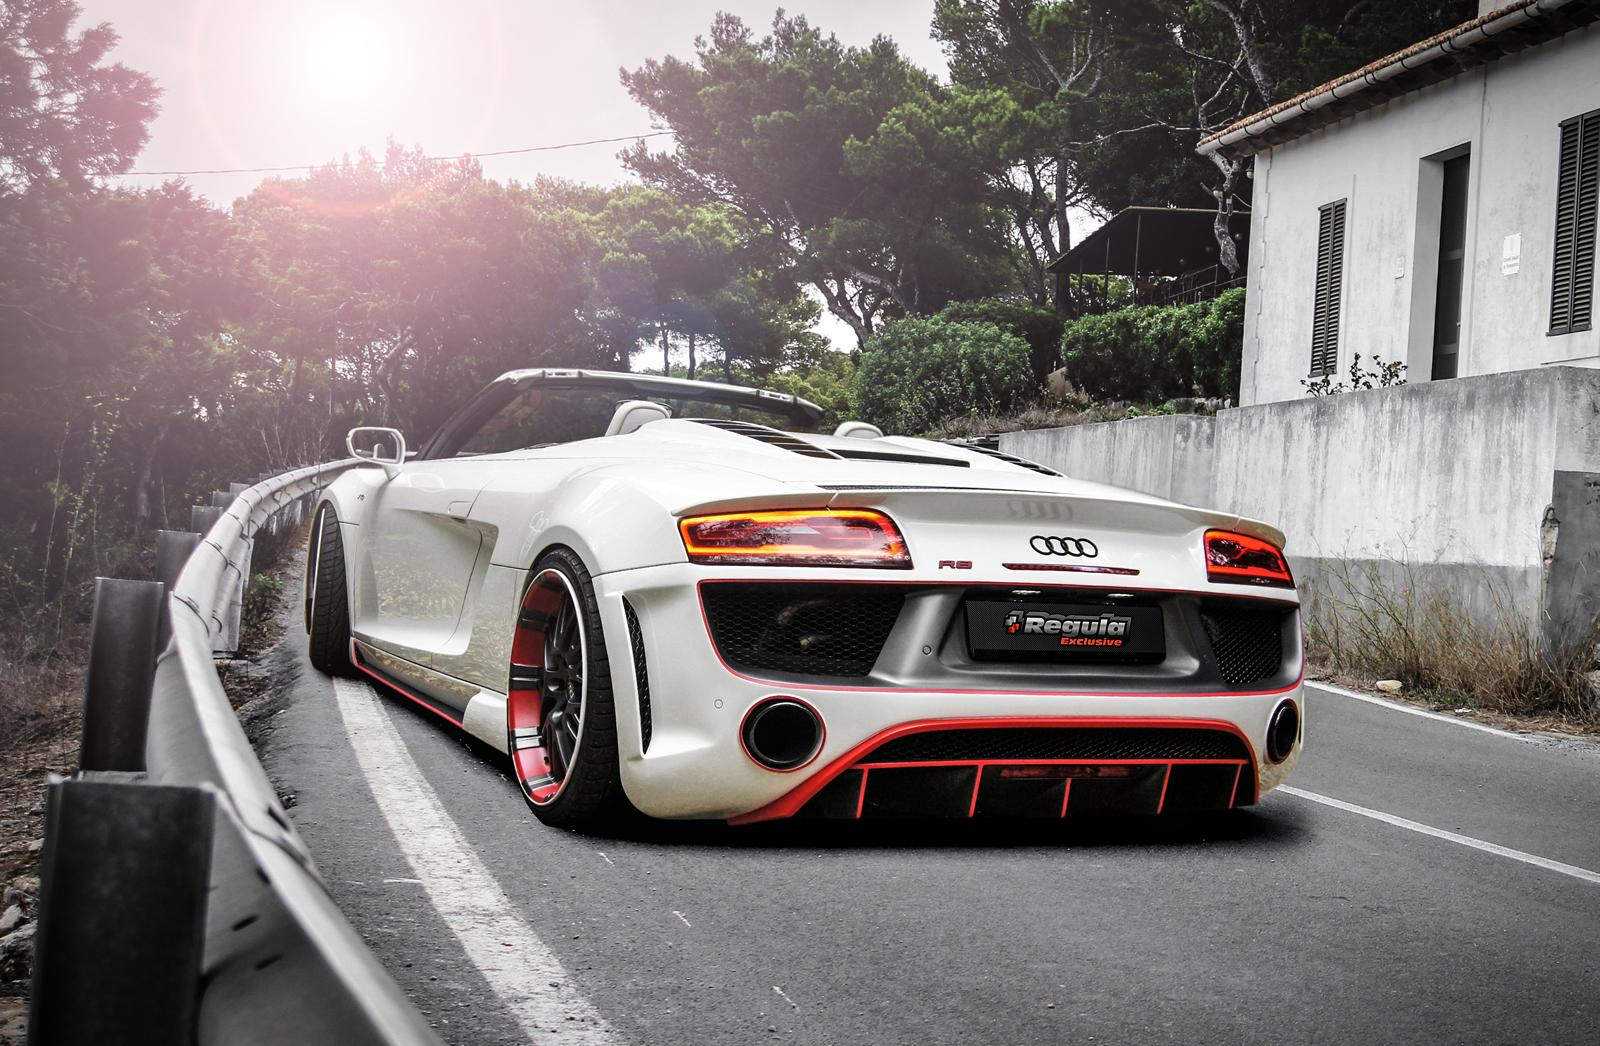 official audi r8 v10 spyder by regula tuning gtspirit. Black Bedroom Furniture Sets. Home Design Ideas